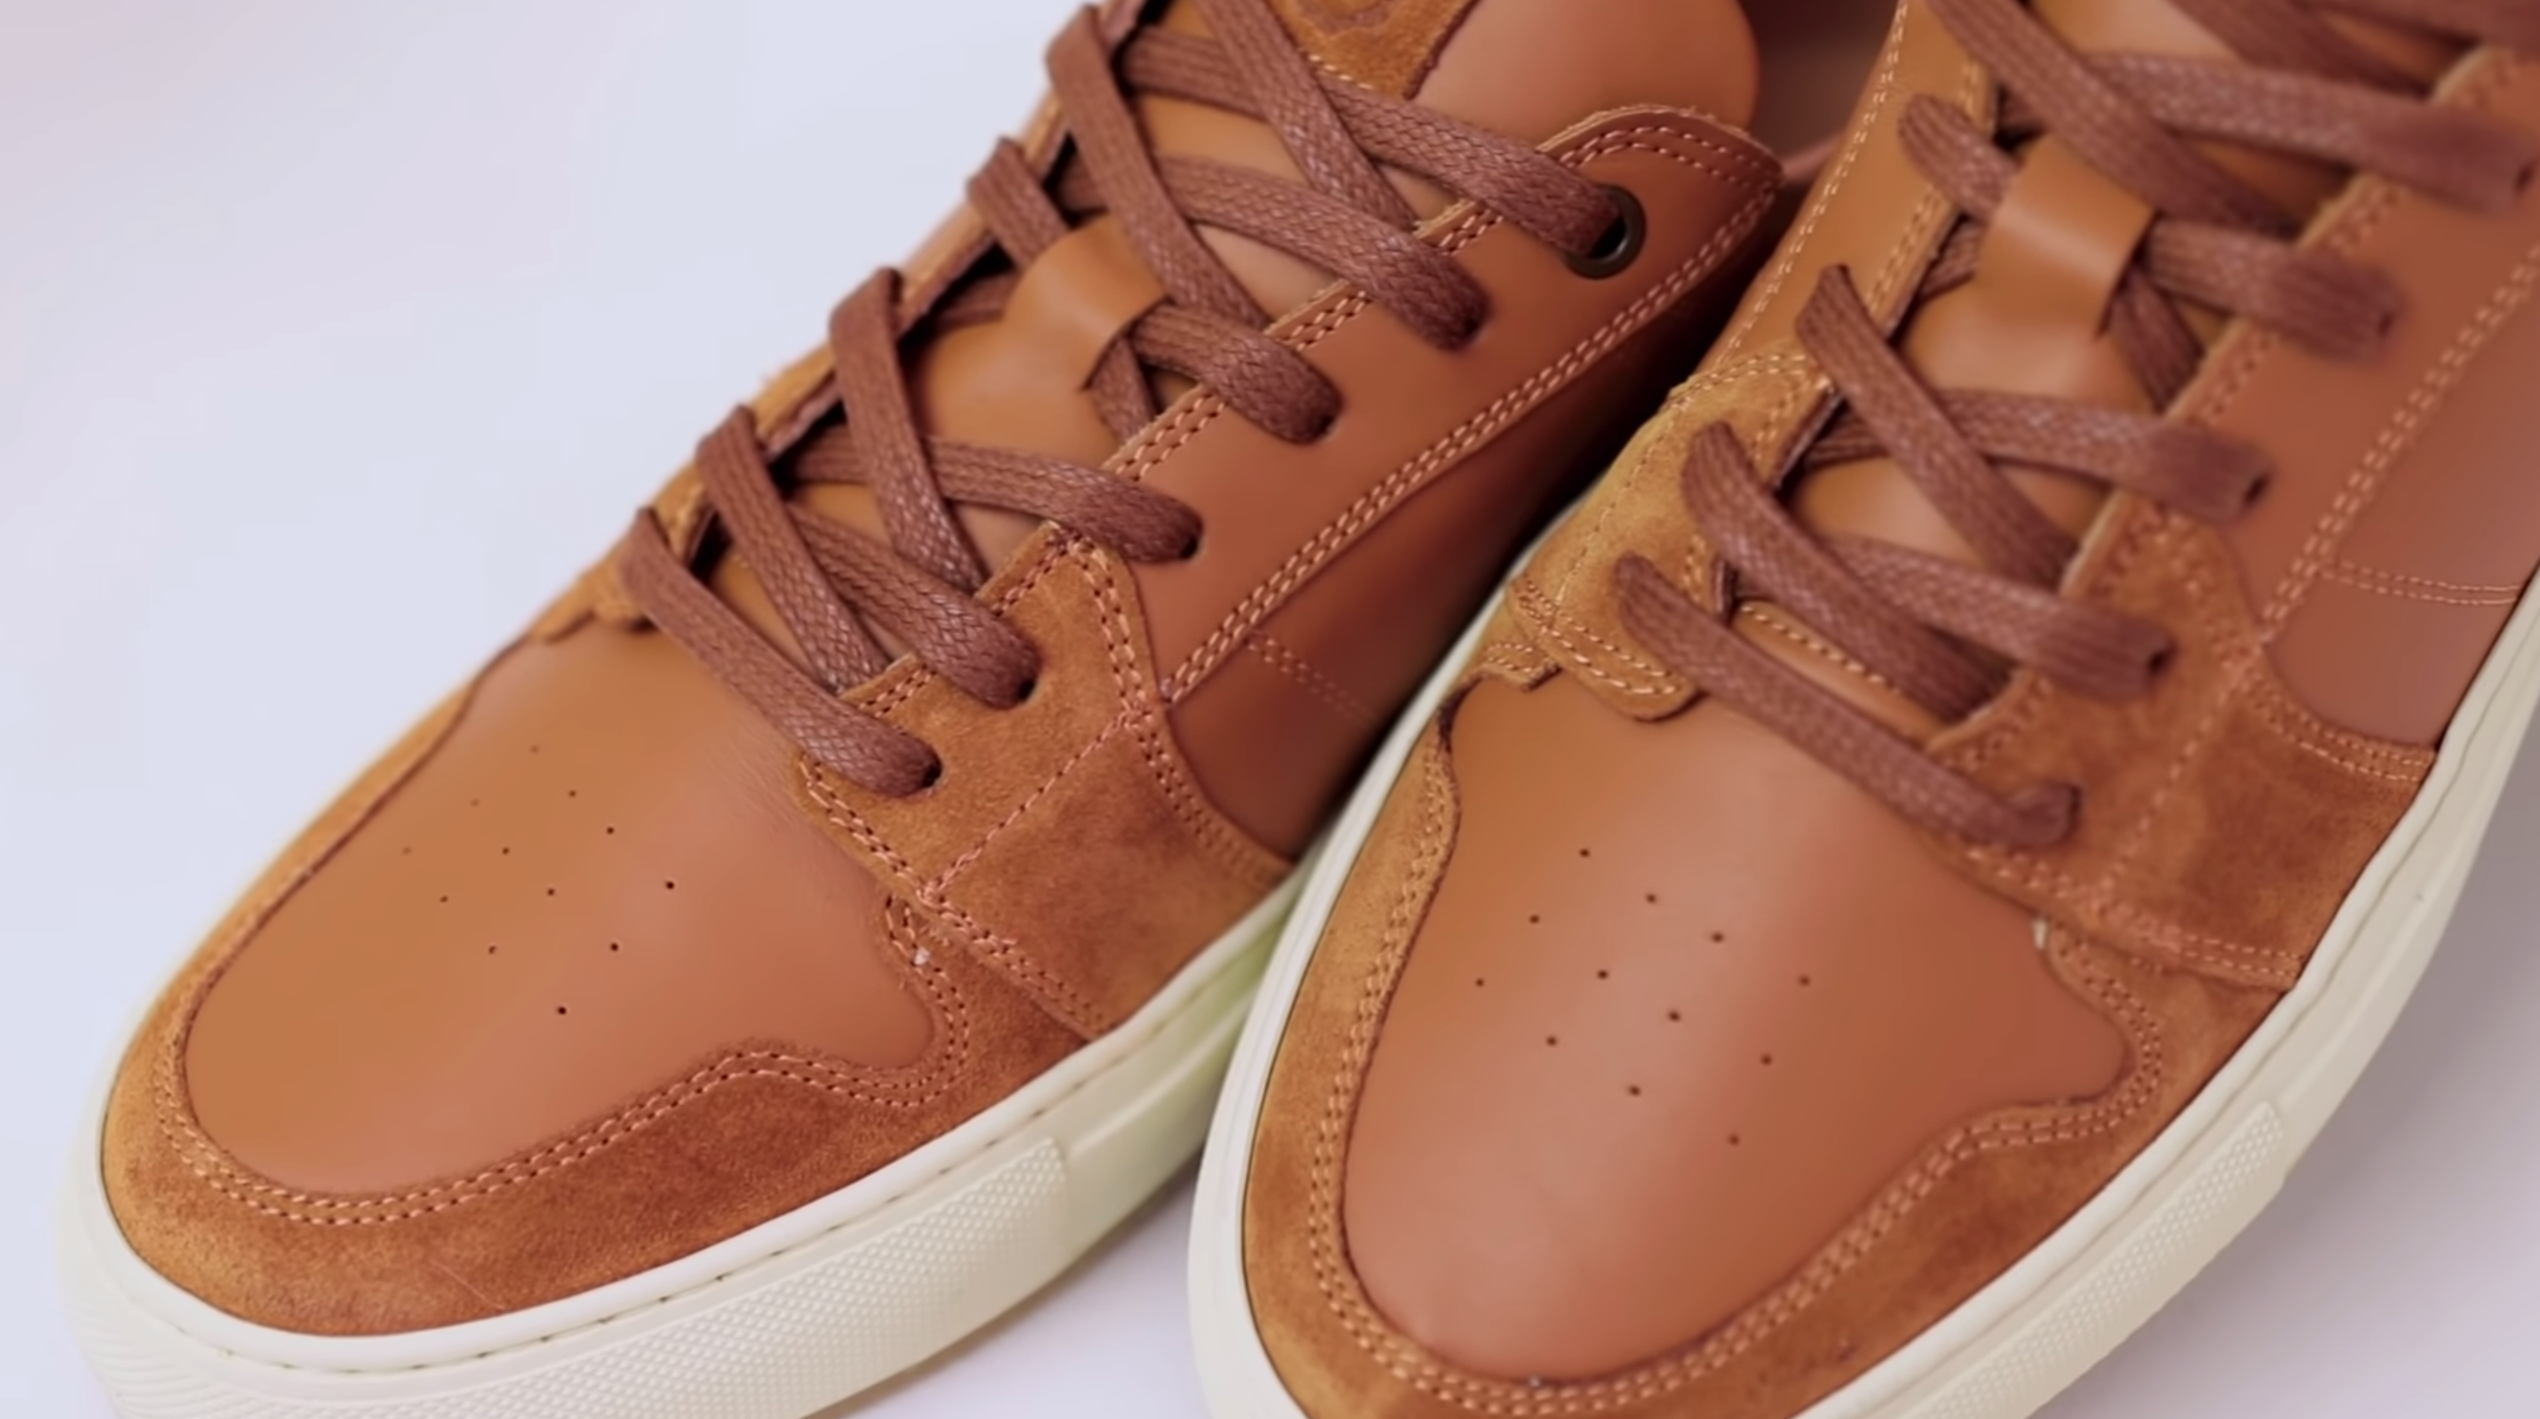 Greats Court leather sneakers in tan